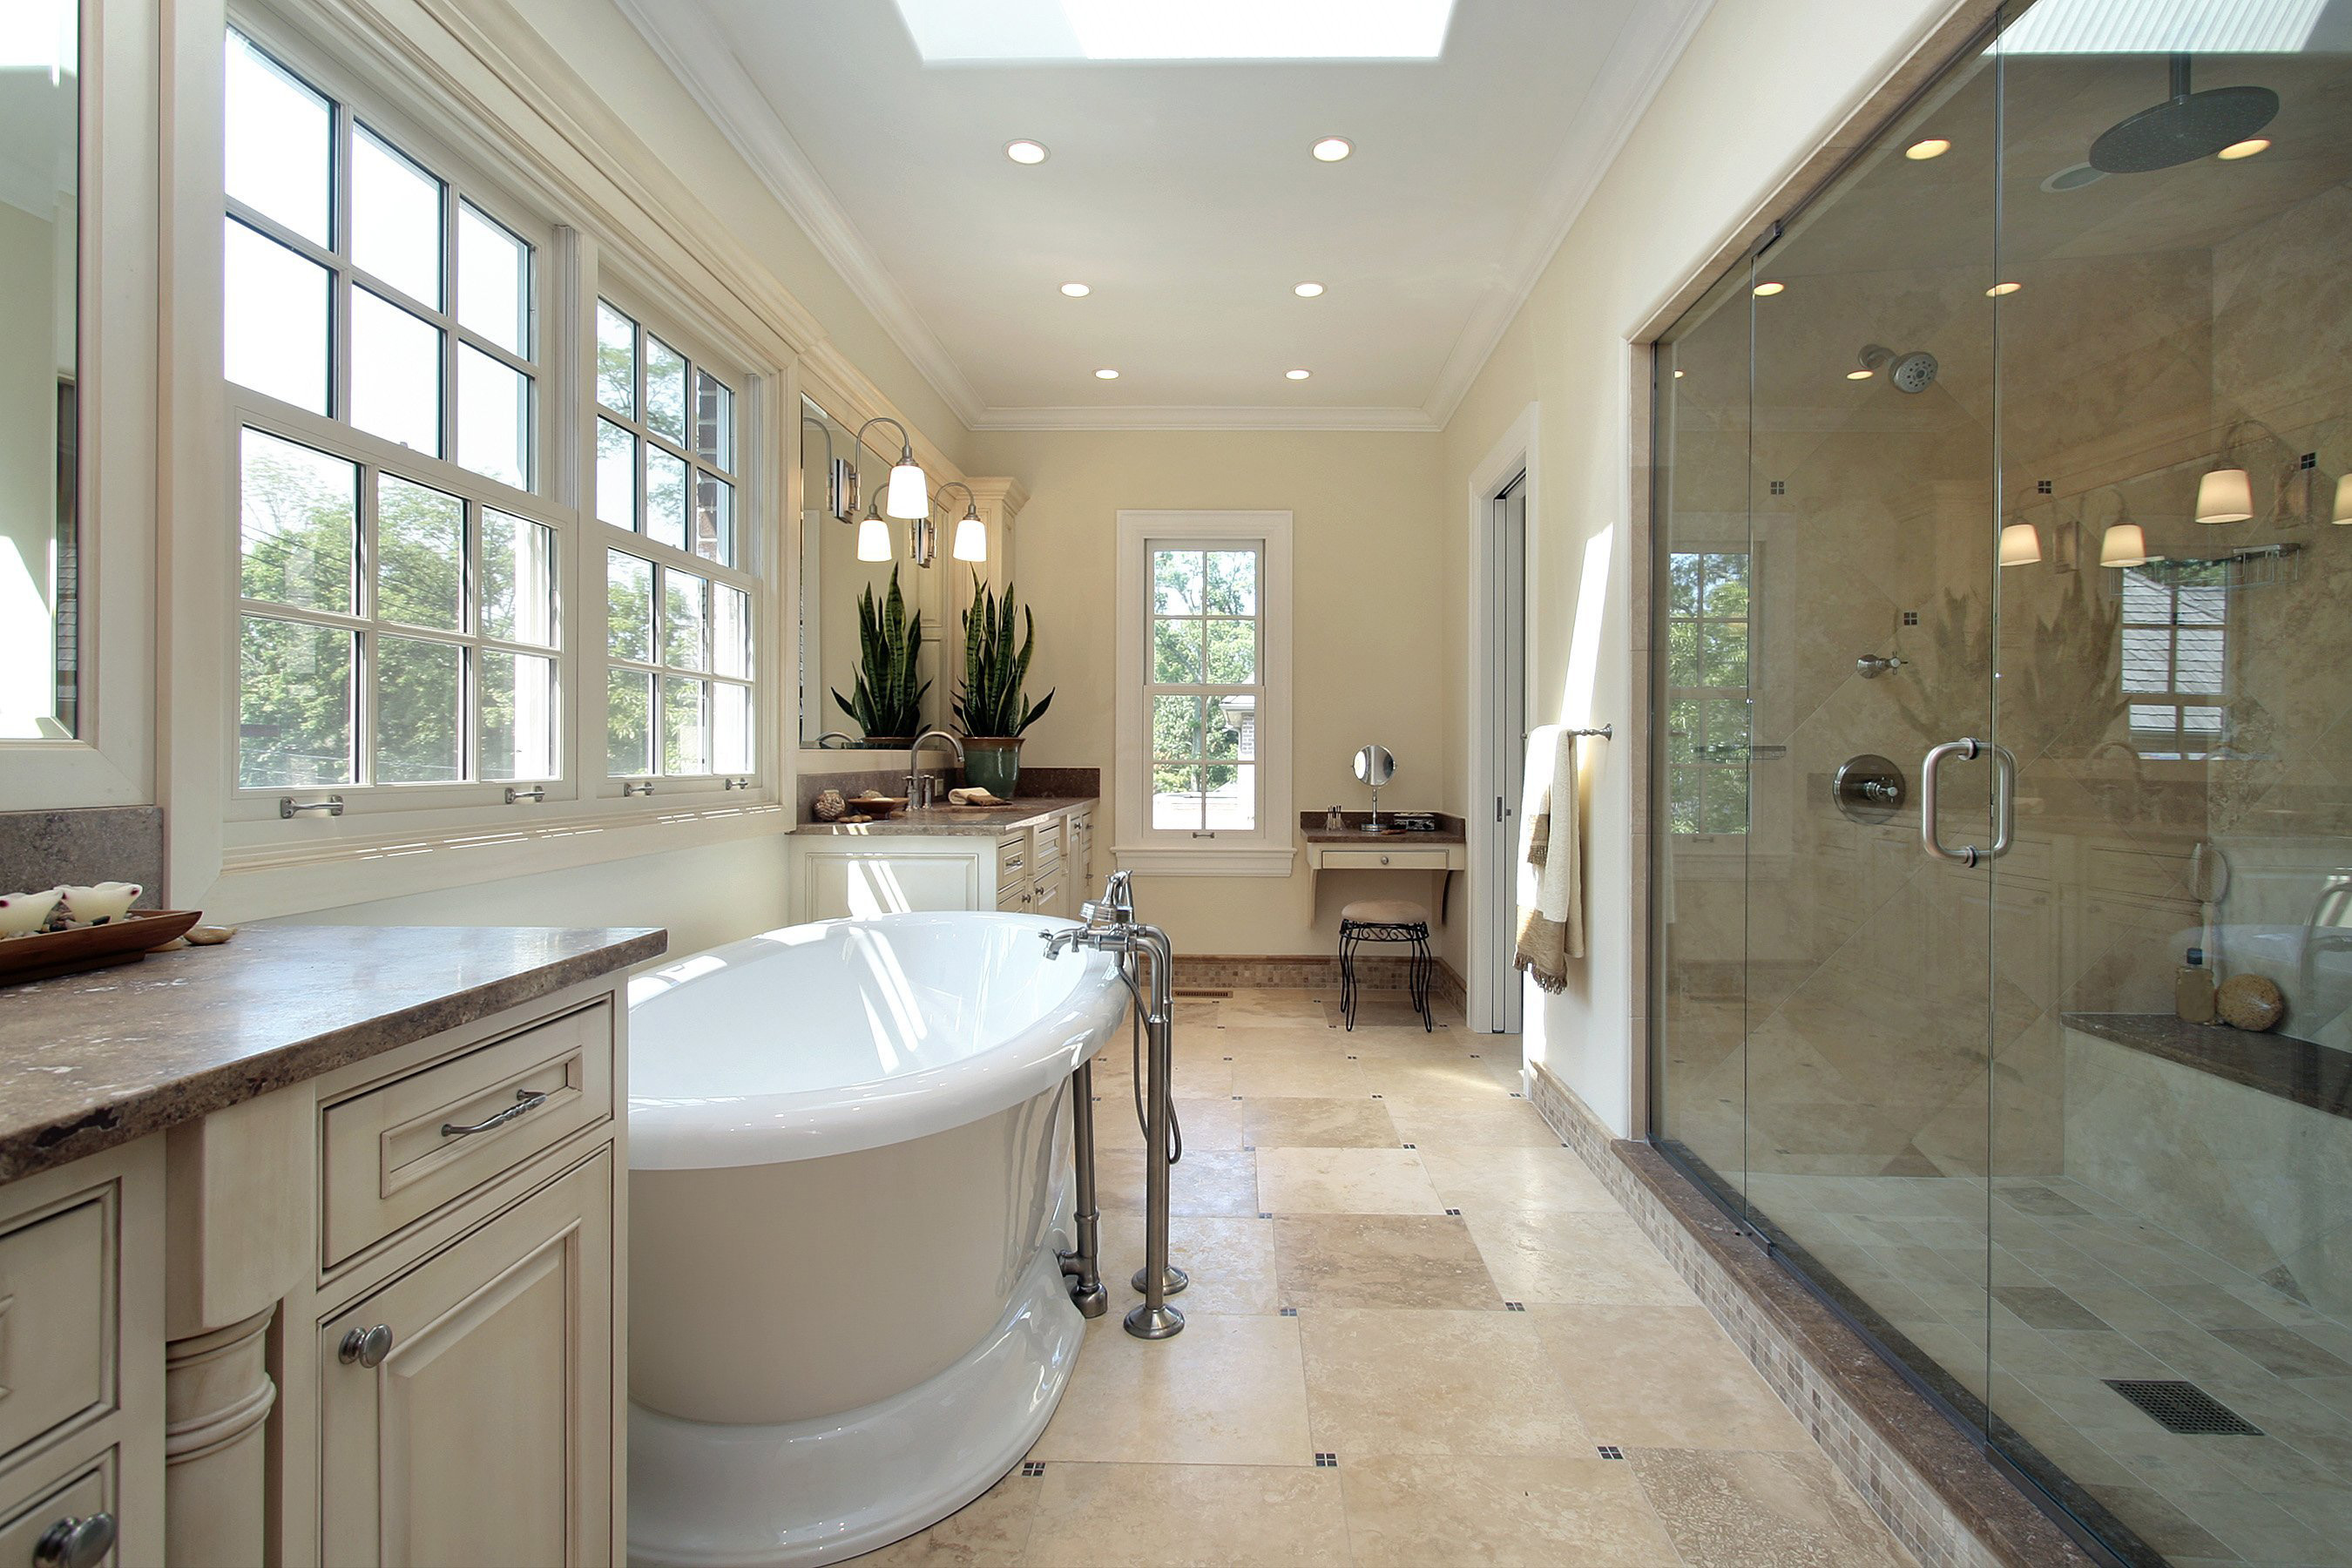 Bathroom Remodel Trends Contemporary Remodel For Bathroom Remodel - Great bathroom remodel ideas